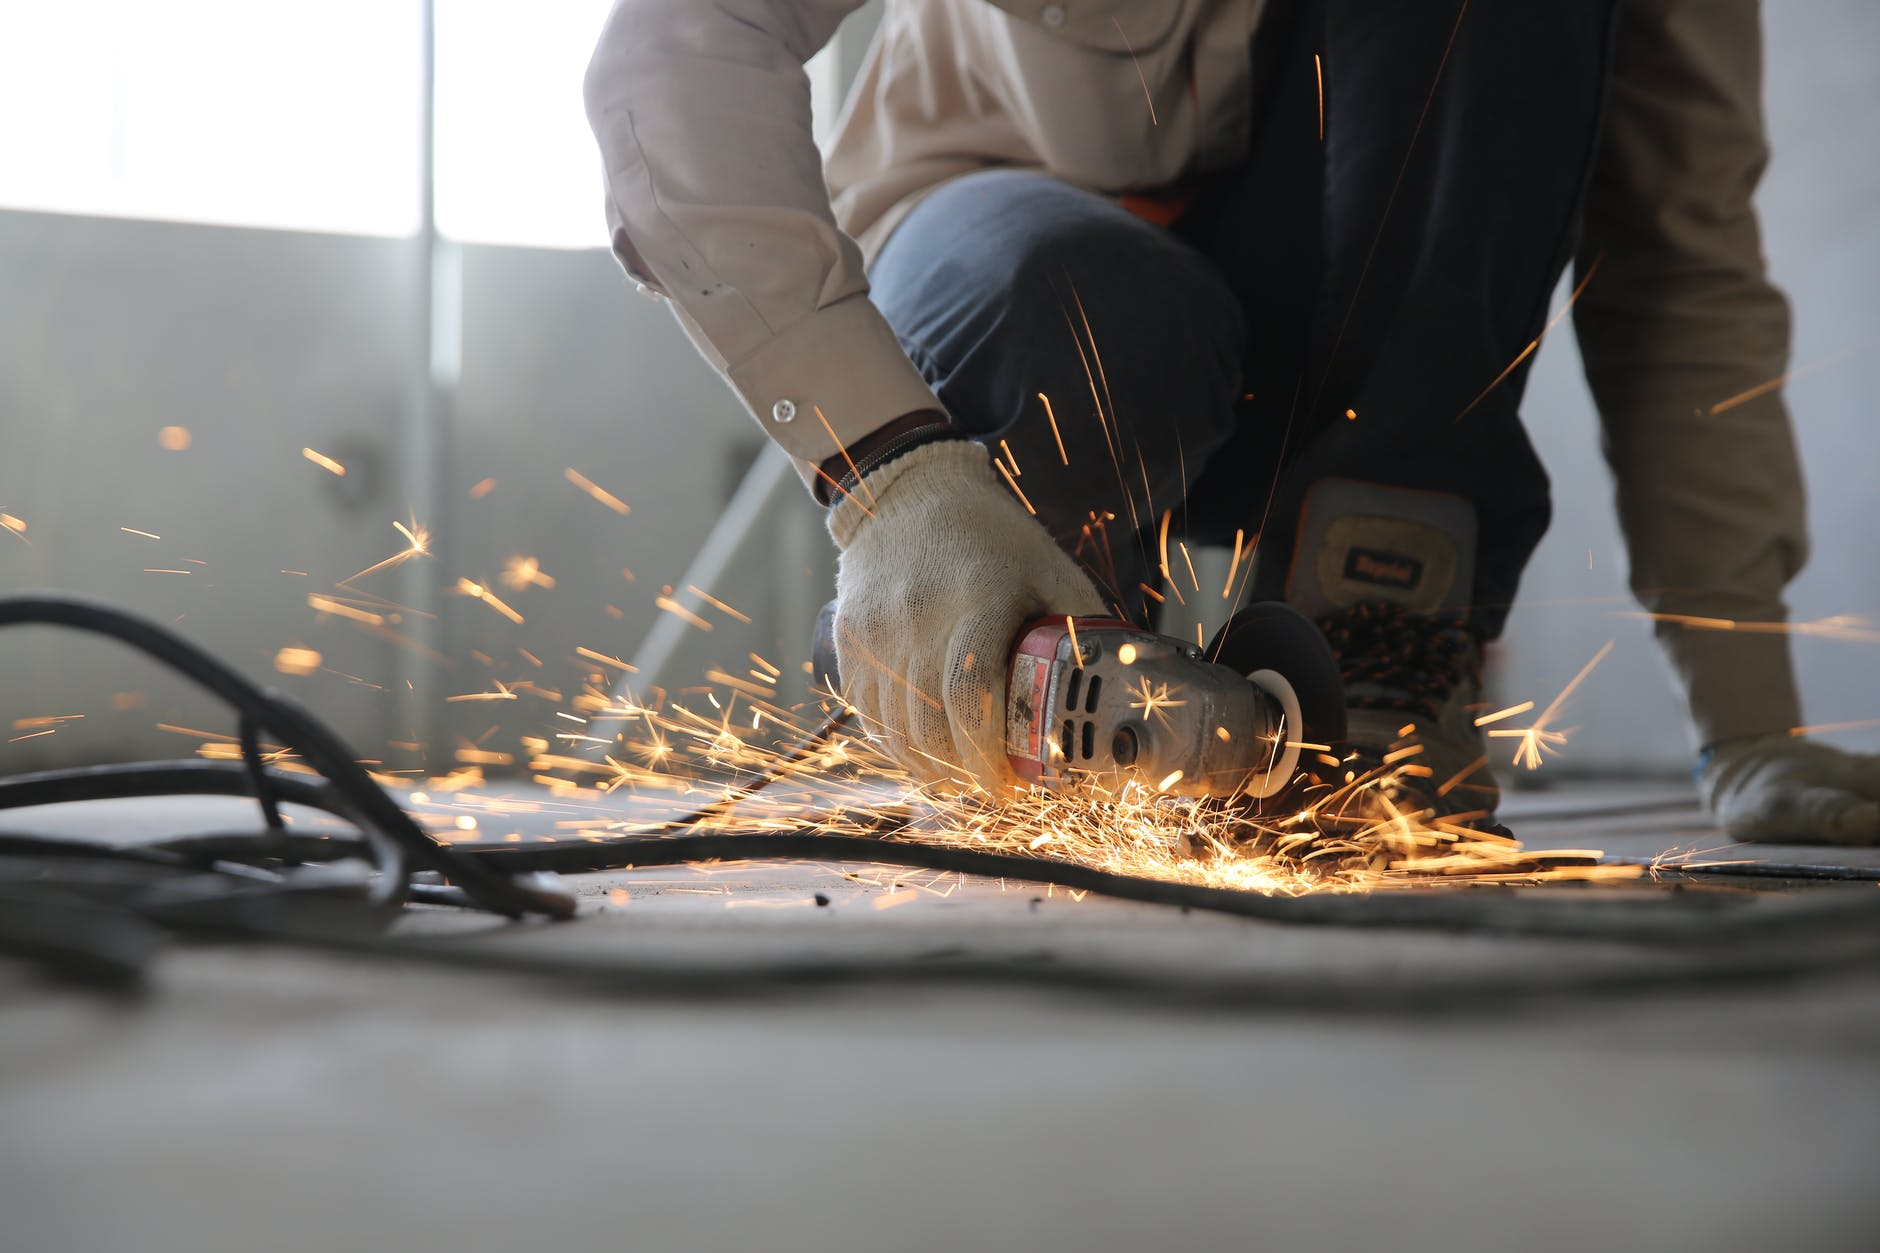 a worker using a electric saw, which has got sparks flying around it, chopping into wood